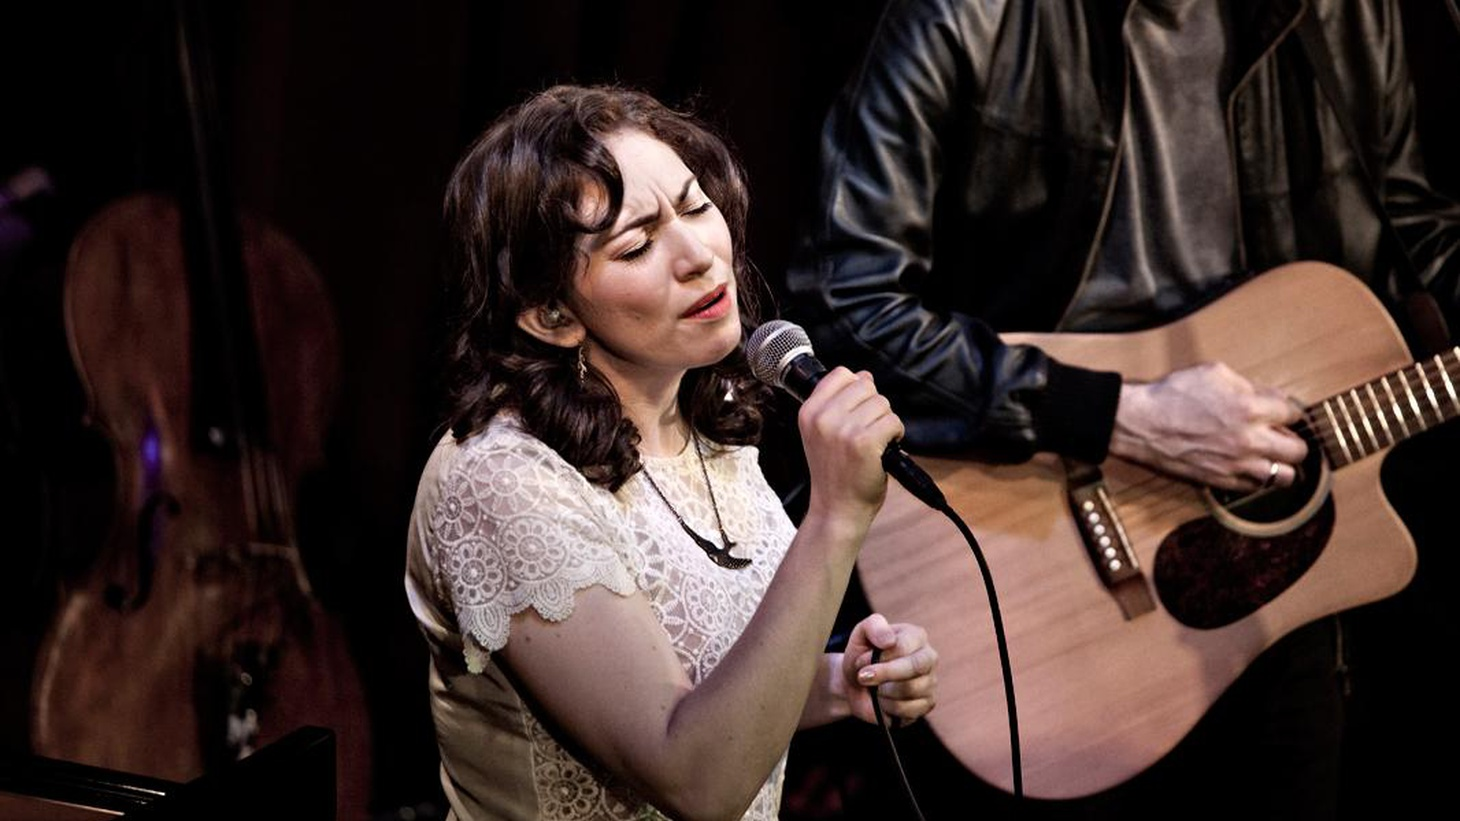 Regina Spektor performed an emotional set of songs from her album What We Saw in the Cheap Seats in front of a loving live audience at KCRW's Apogee Sessions.